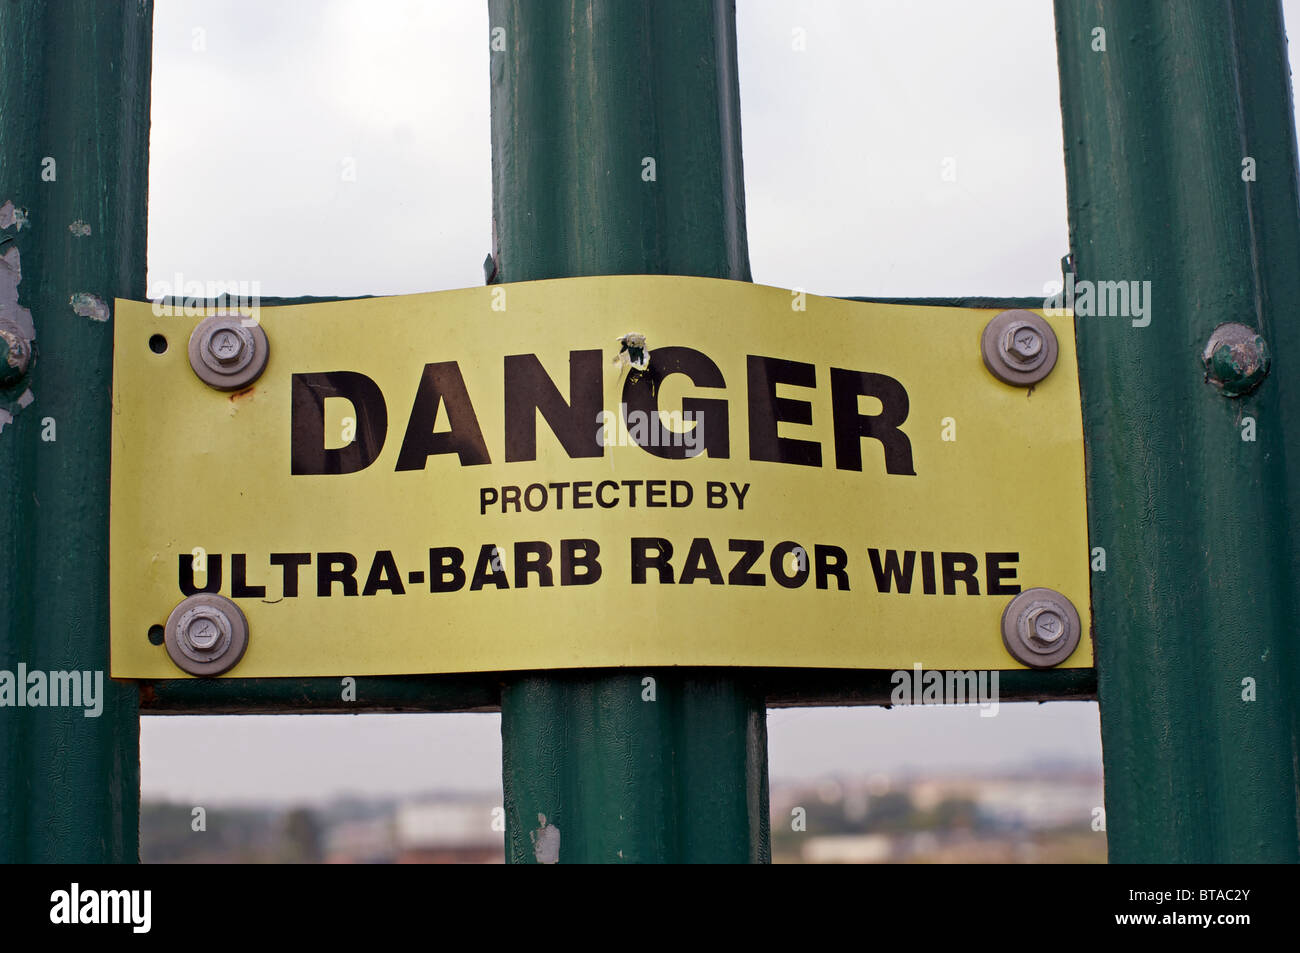 Industrial site protected by ultra-barb razor wire - Stock Image